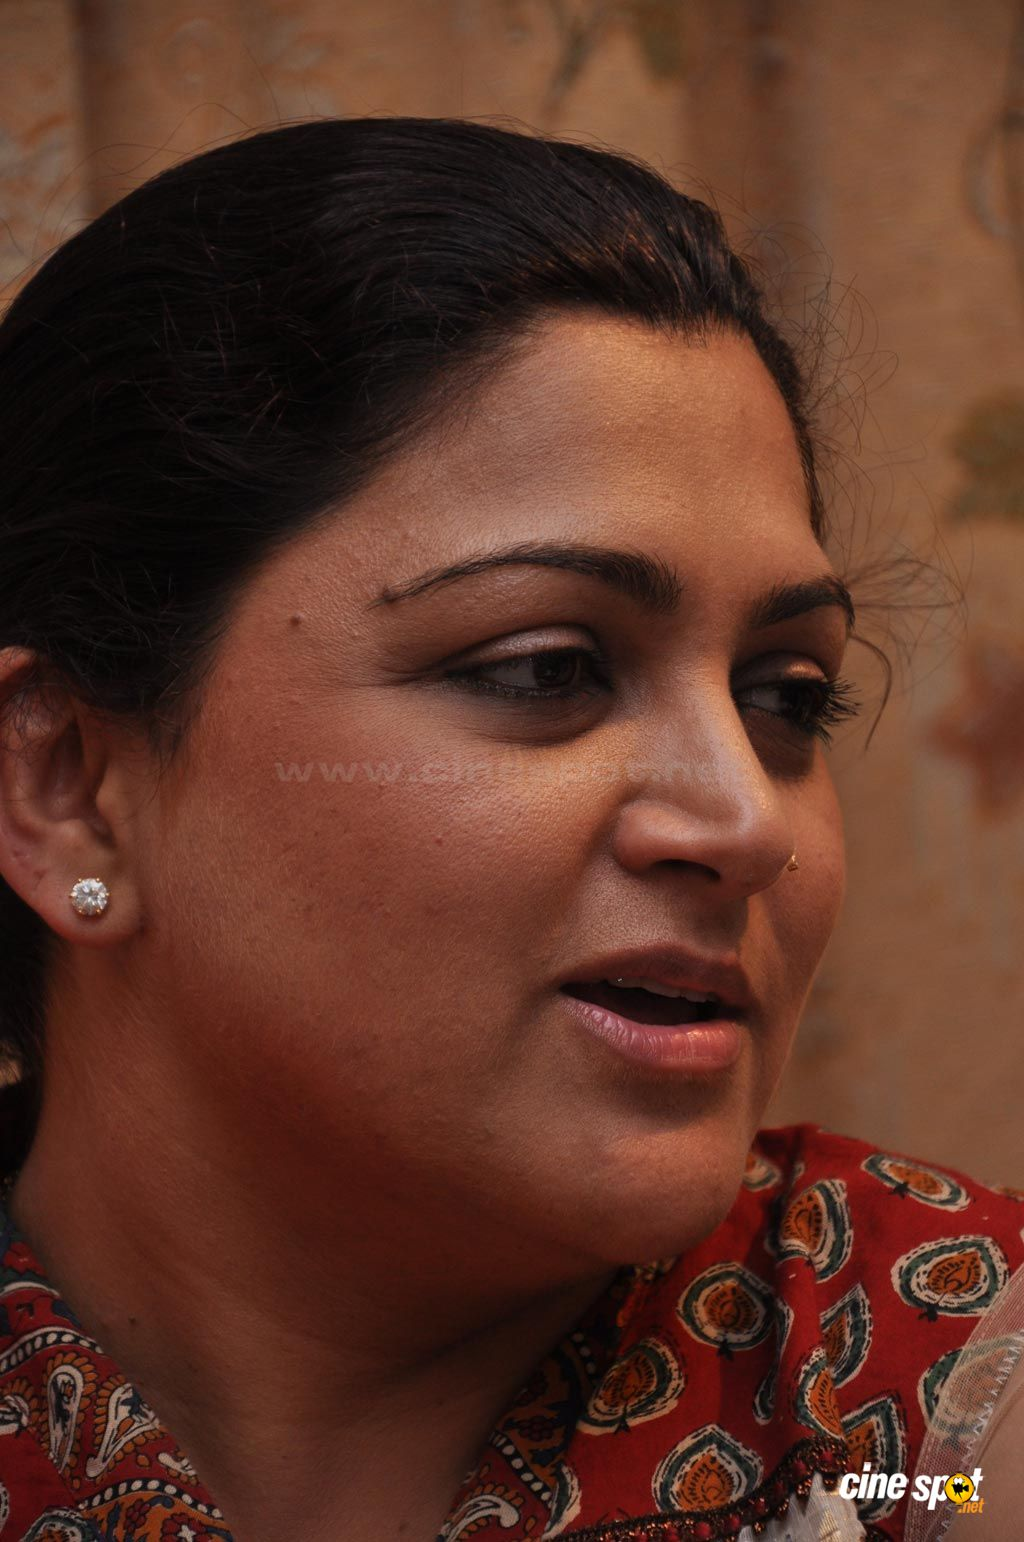 Tamil+Actors+Bulu+Film Tamil Actor Kushboo Cake Ideas and Designs